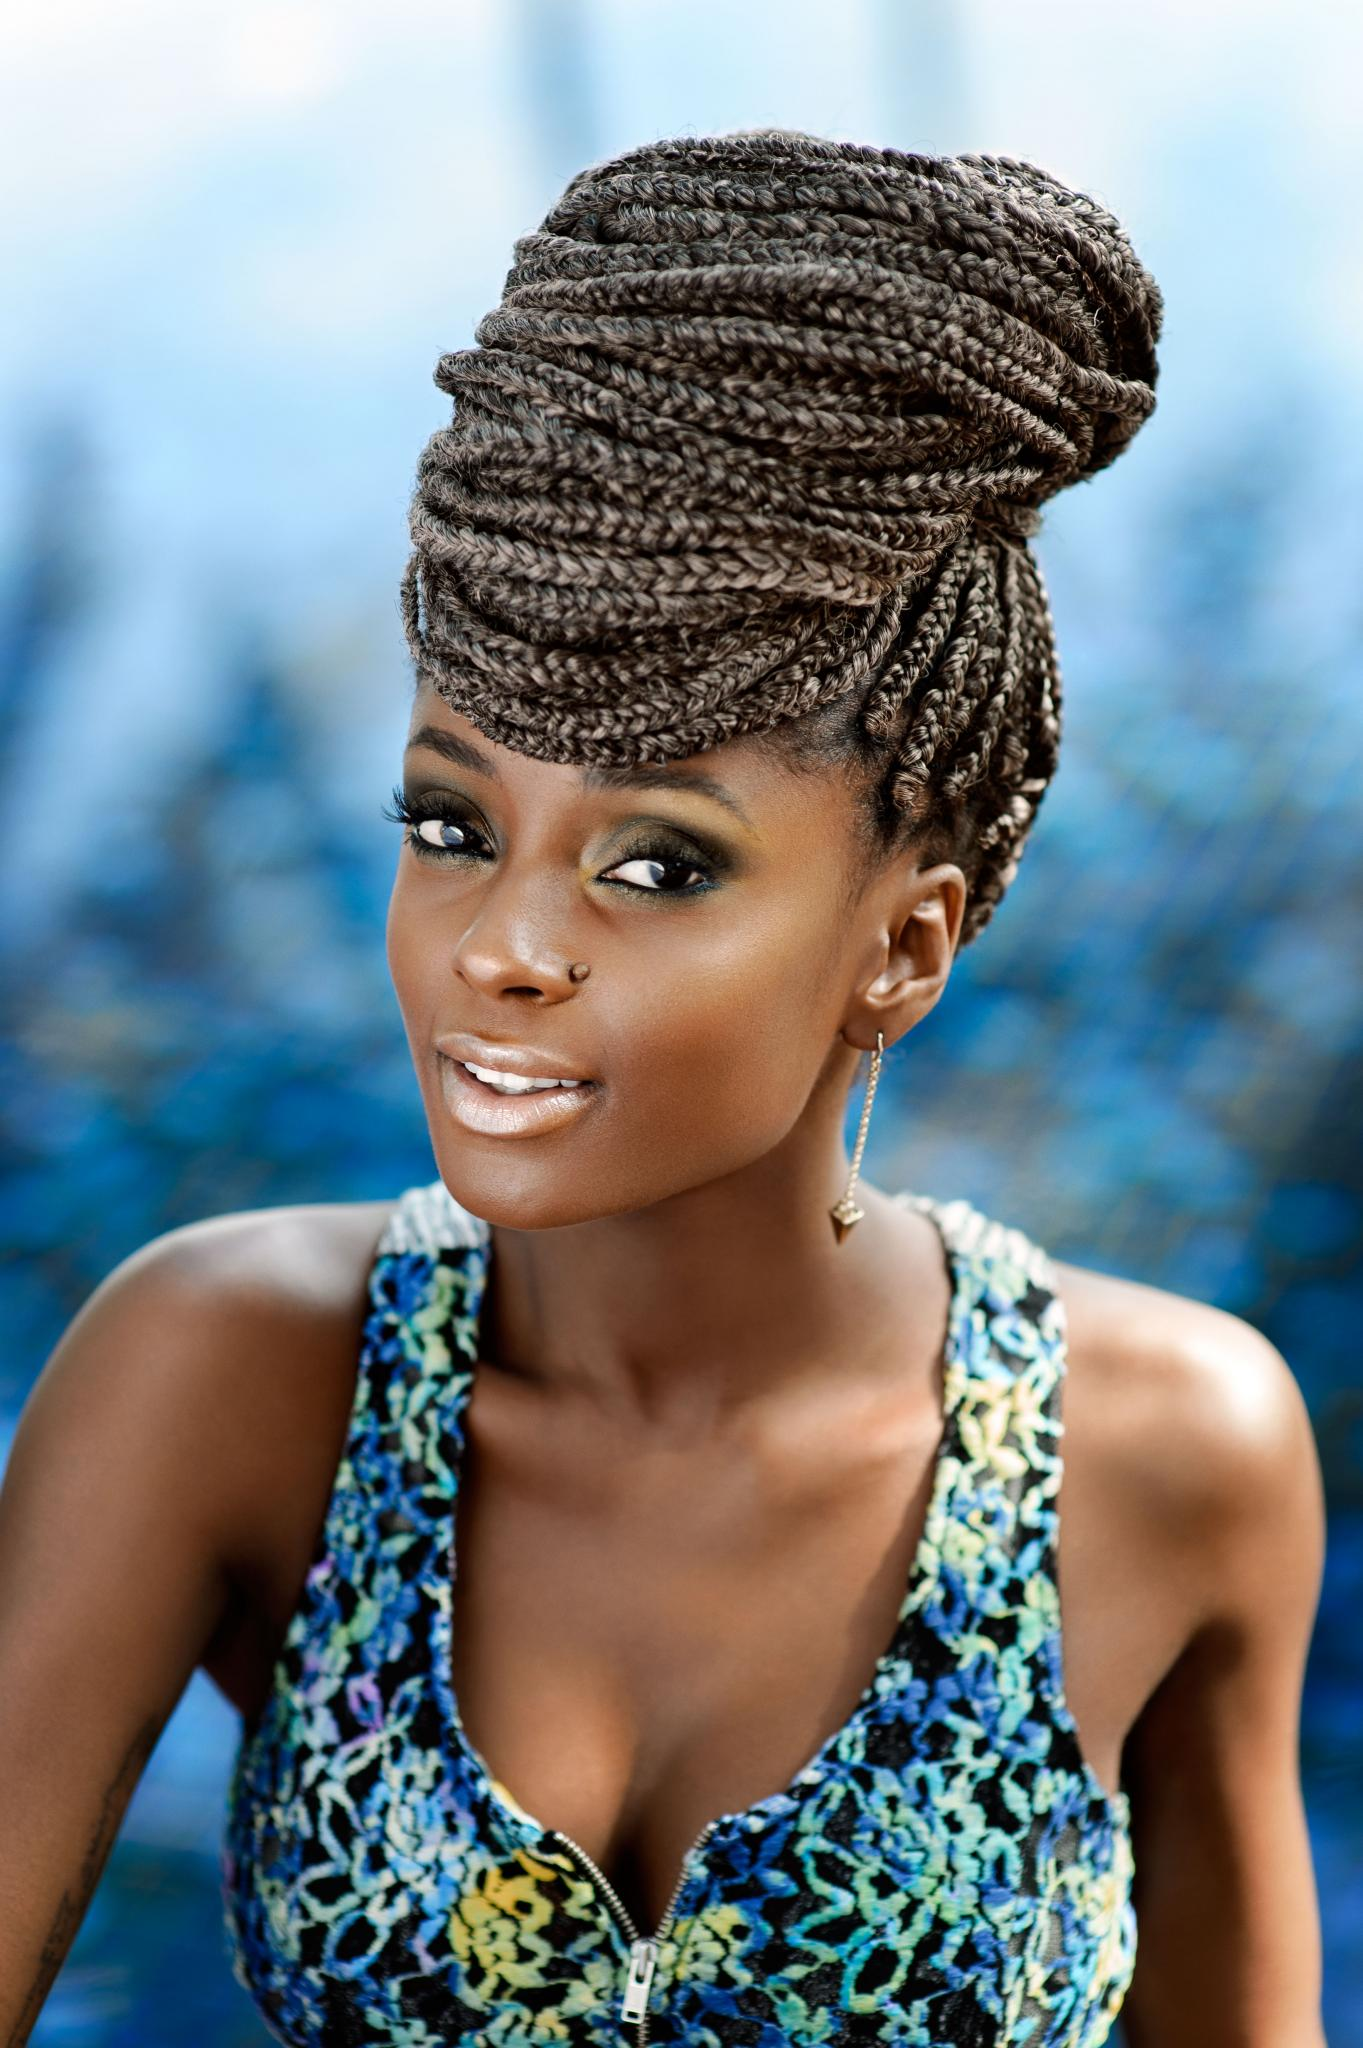 ESSENCE Global Issue: Get to Know Tanzanian Pop Singer Vanessa Mdee